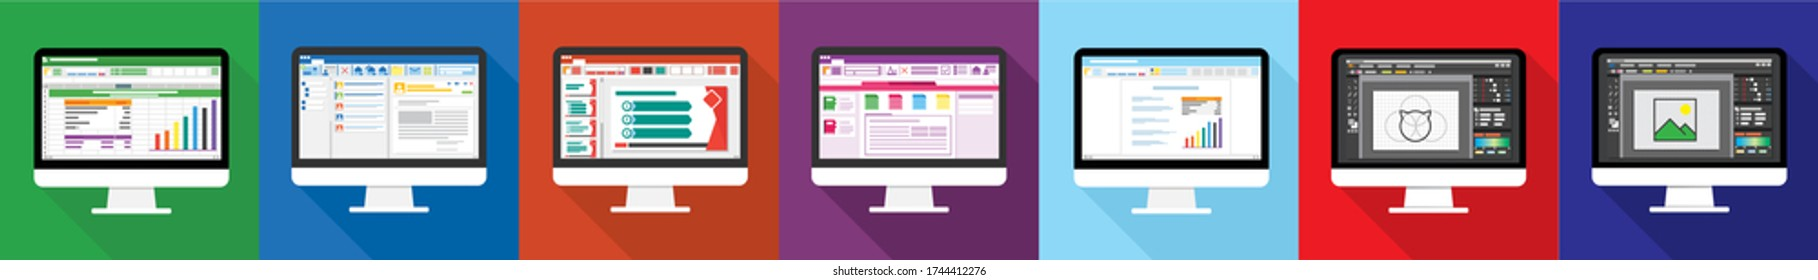 Spreadsheet, email, presentation, word, image editor software program on Computer screen flat icon. office things for planning and accounting, analysis, audit, project management, vector illustration